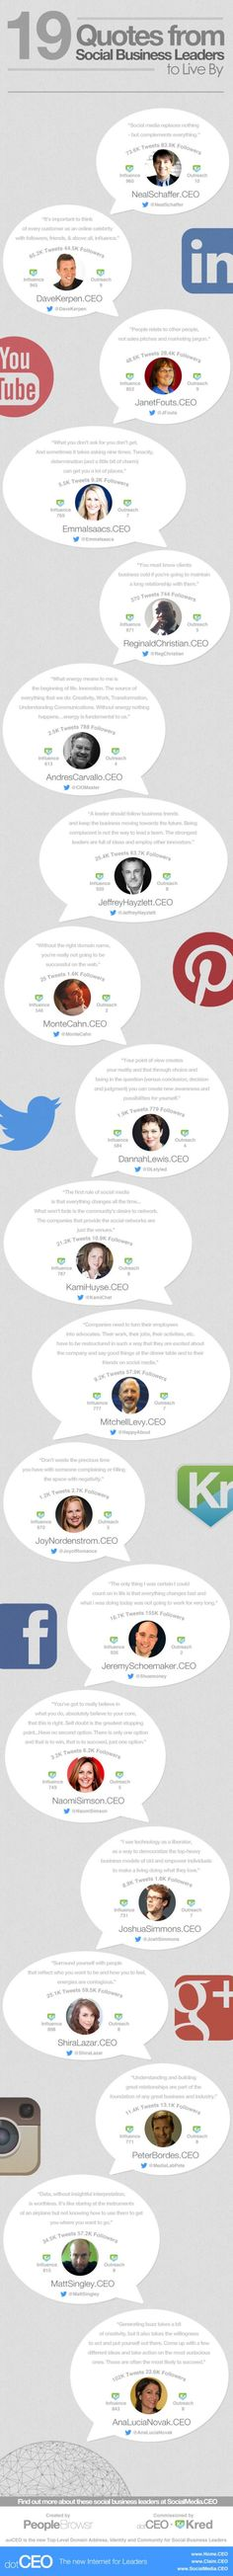 19 Social Media Quotes for Business to Live By #socialmedia #quotes #infographic